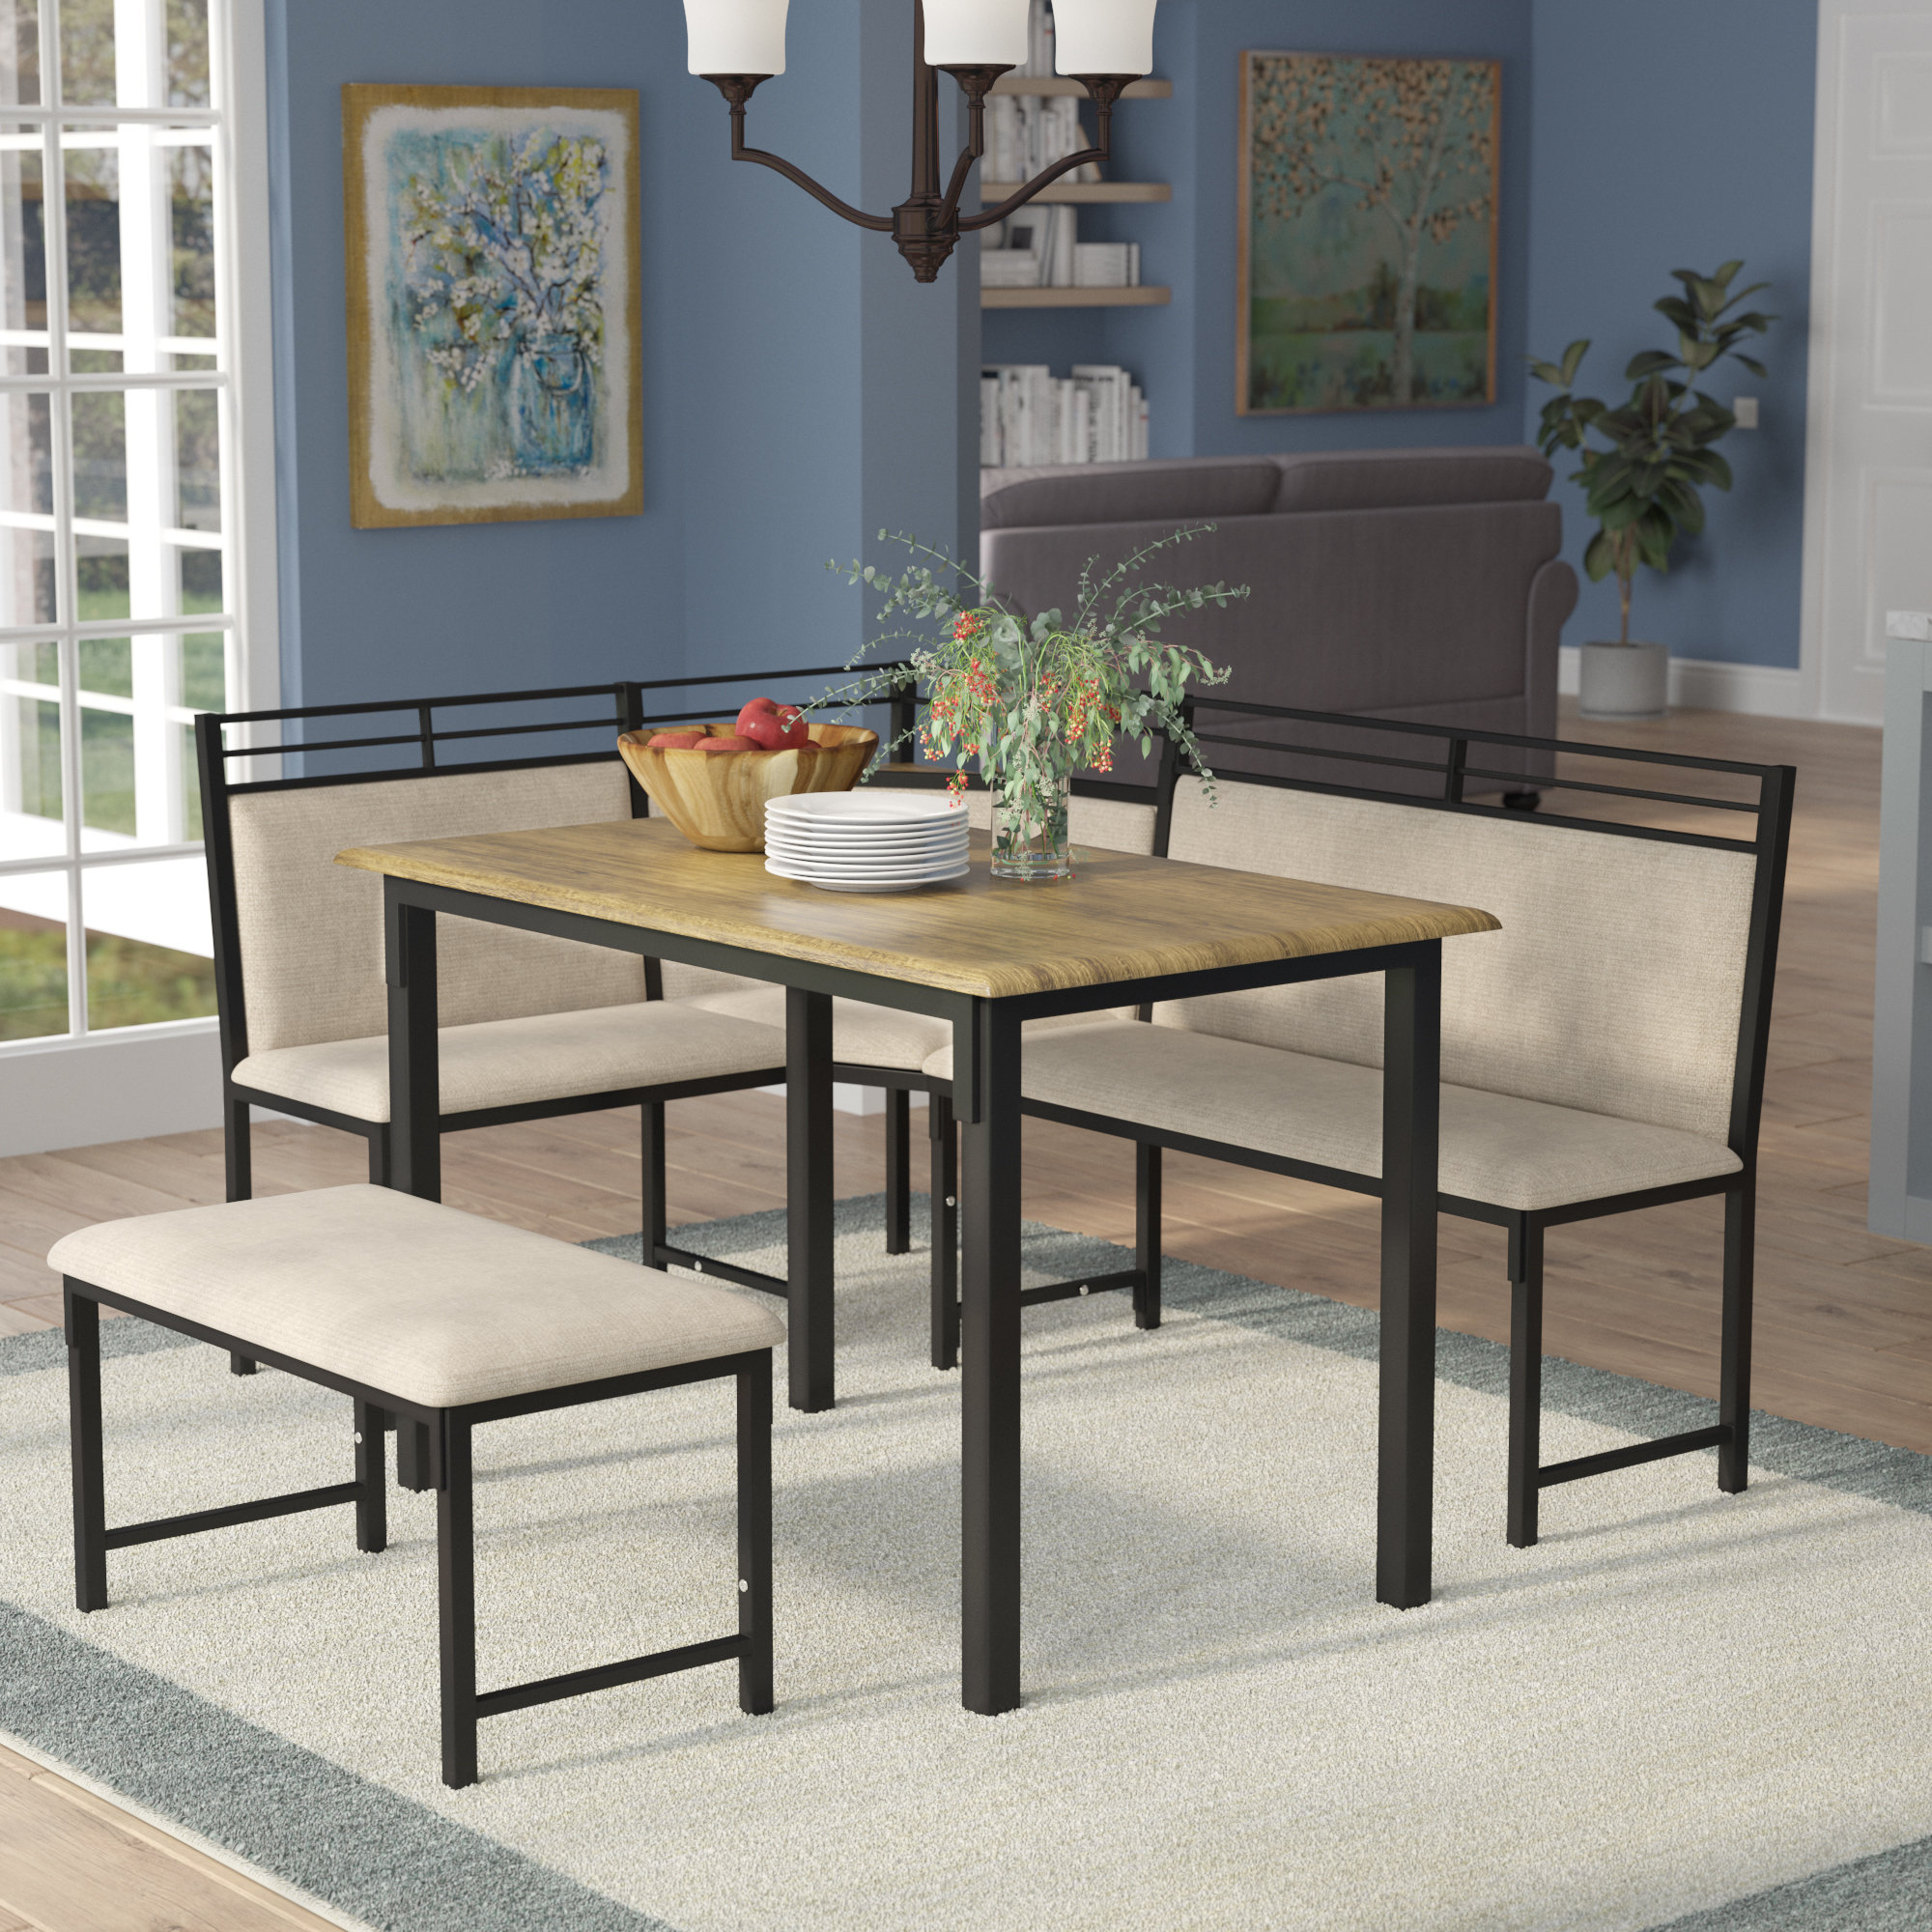 Isolde 3 Piece Dining Sets throughout Popular Red Barrel Studio Moonachie Corner 3 Piece Dining Set & Reviews